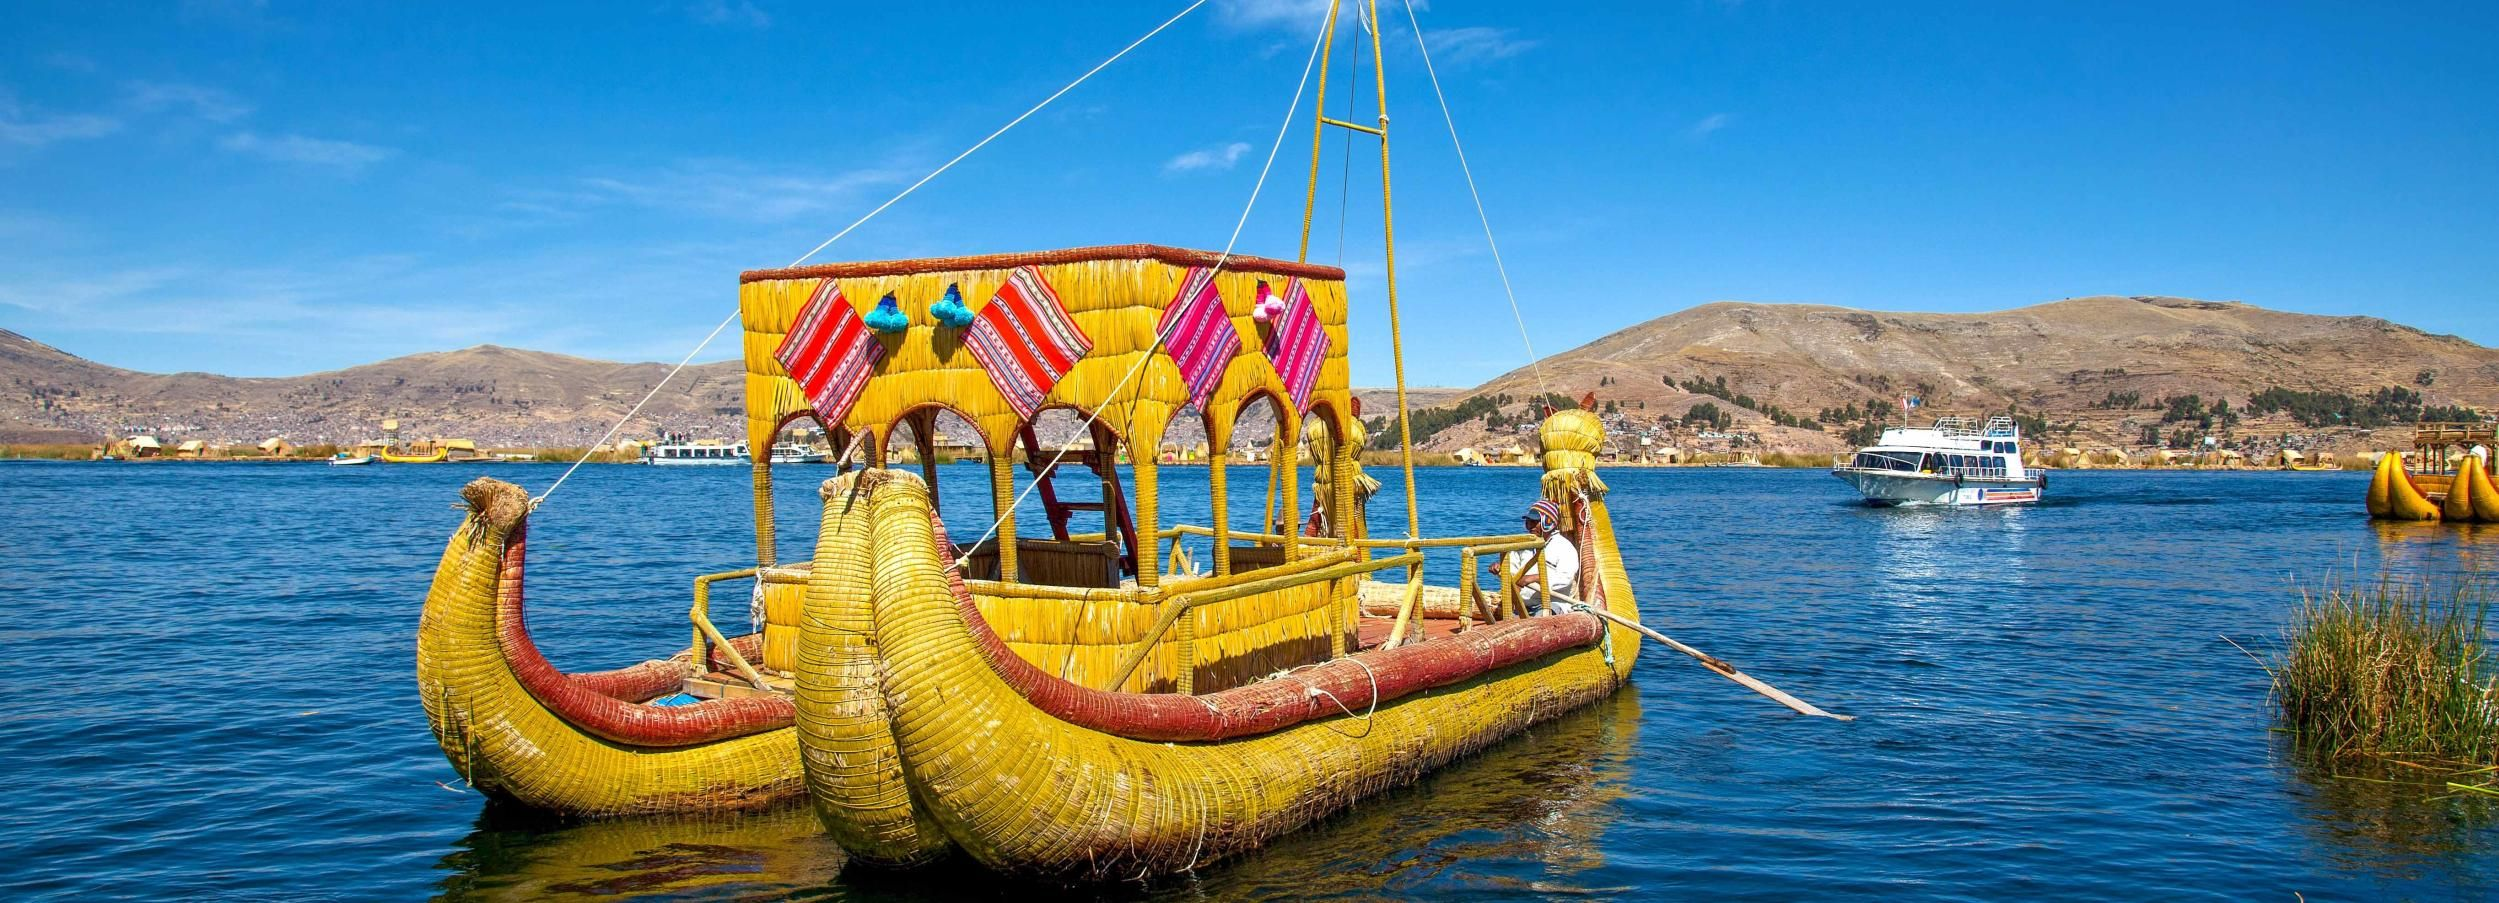 Uros and Taquile Island Boat Trip from Puno